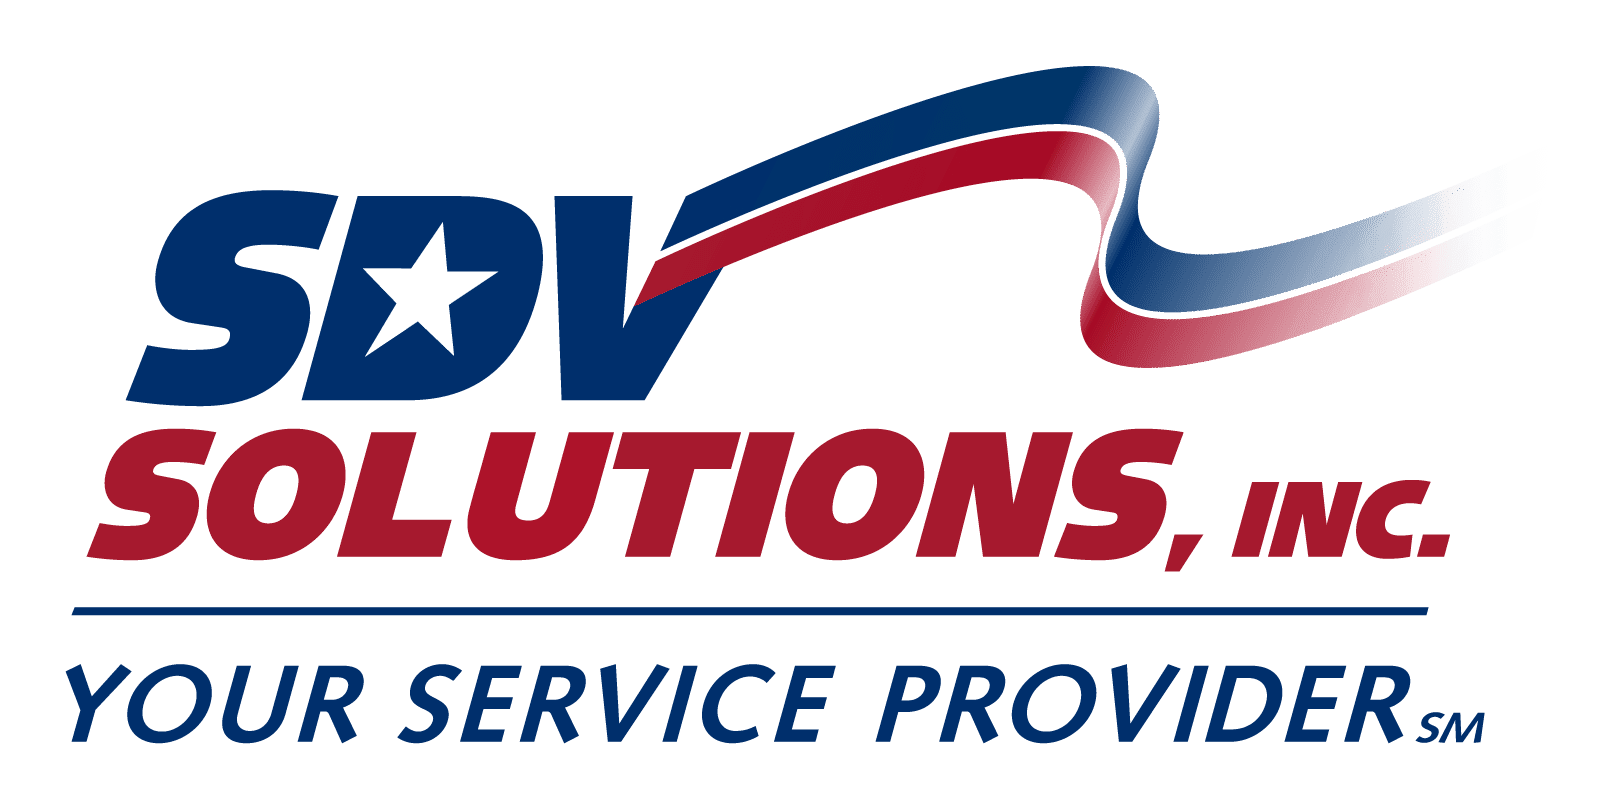 Client Logo - Digital Marketing for Government Contractors